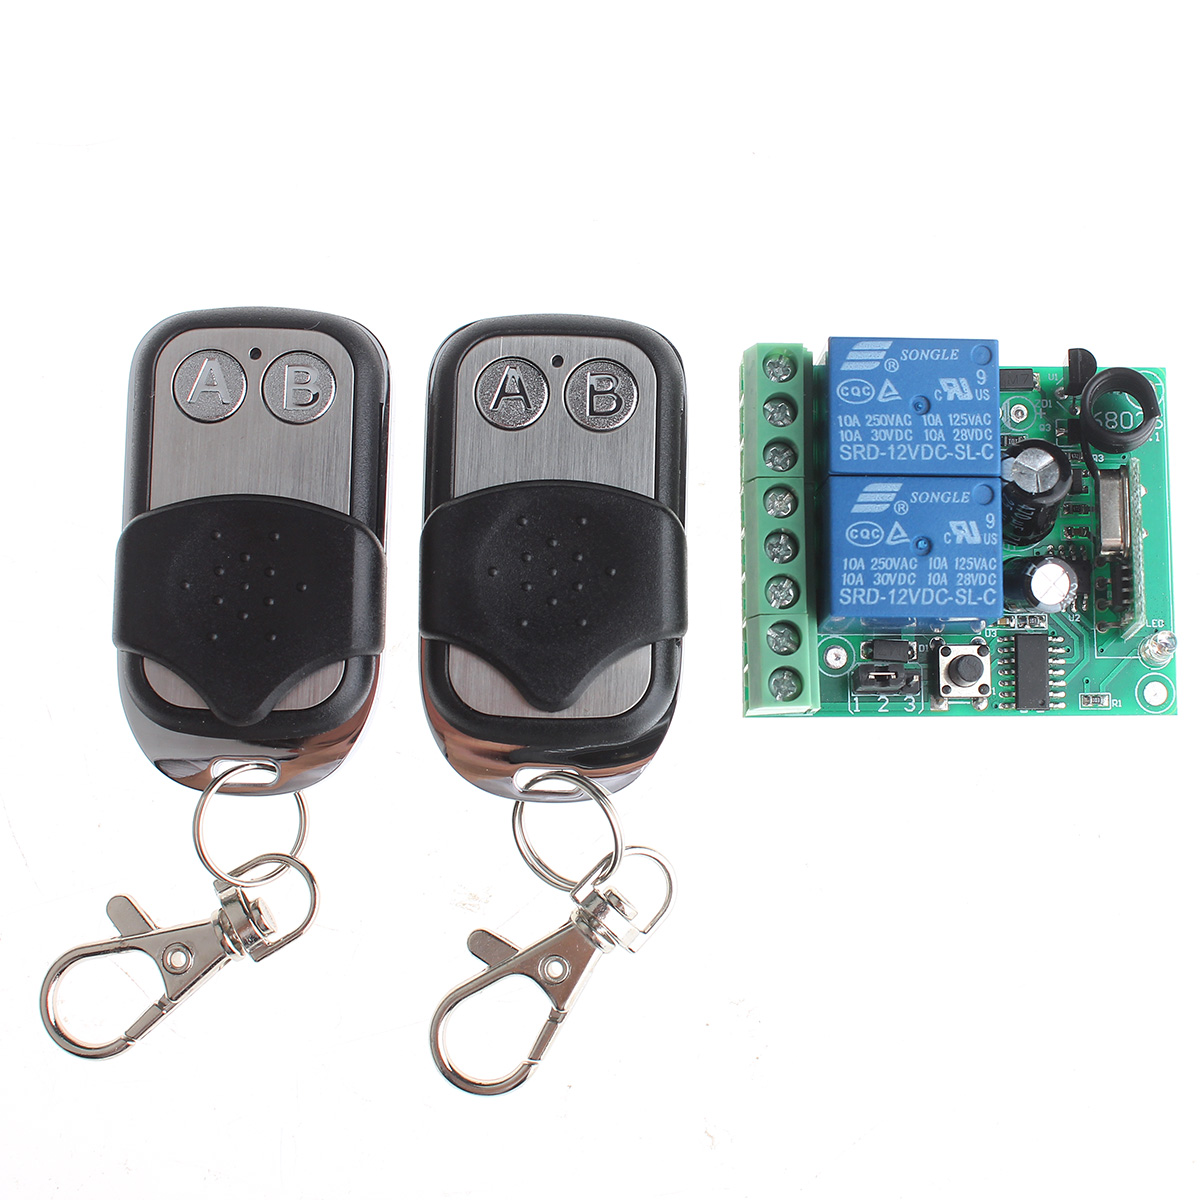 DIY Electronics 209411 VGG06 12V 315MHz 2-CH Wireless Remote Switch w/ 2-Remote Controls